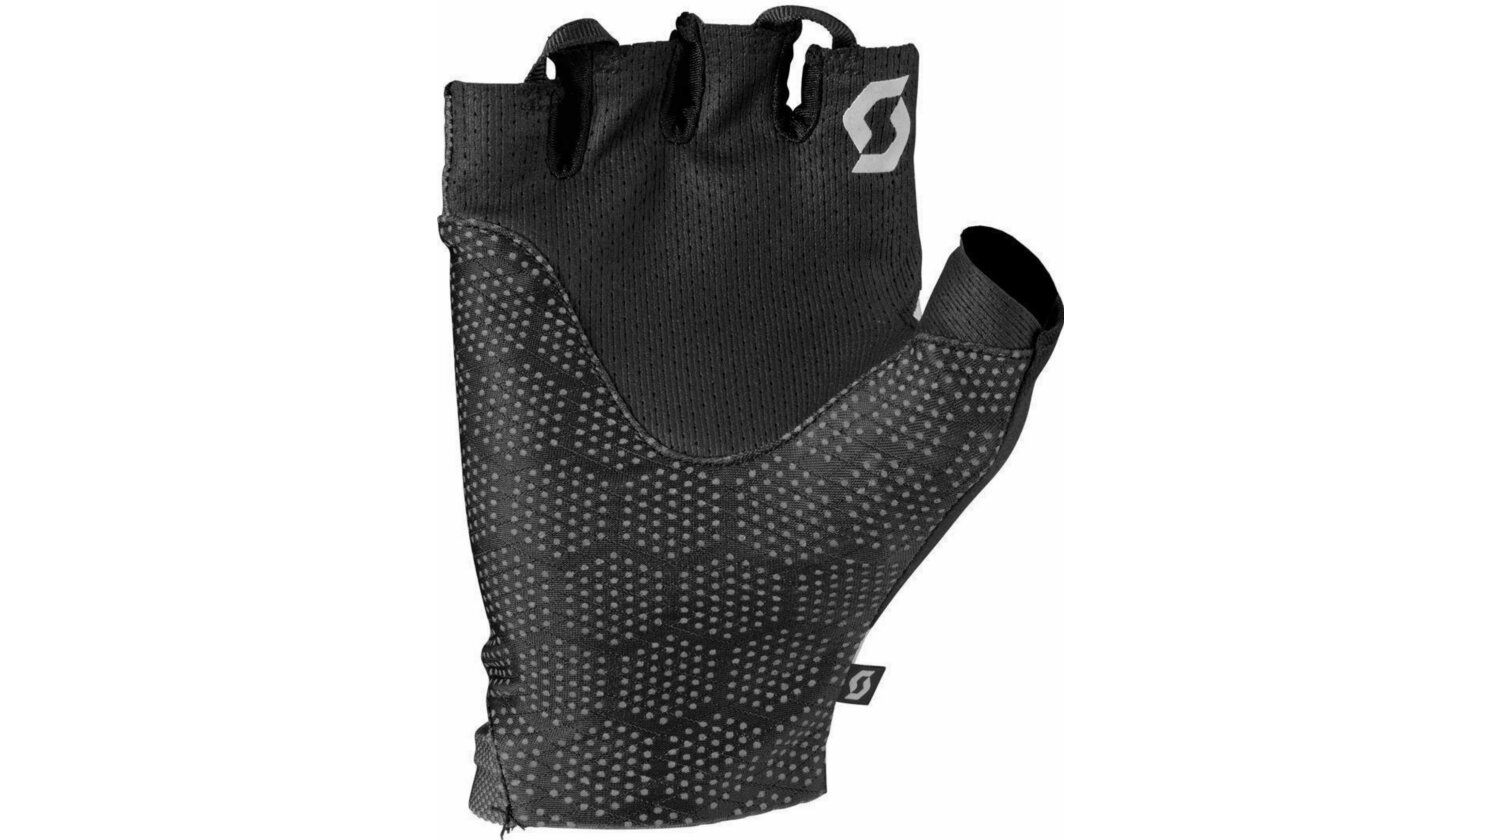 Scott Glove RC Pro Tec SF Kurzfingerhandschuh black